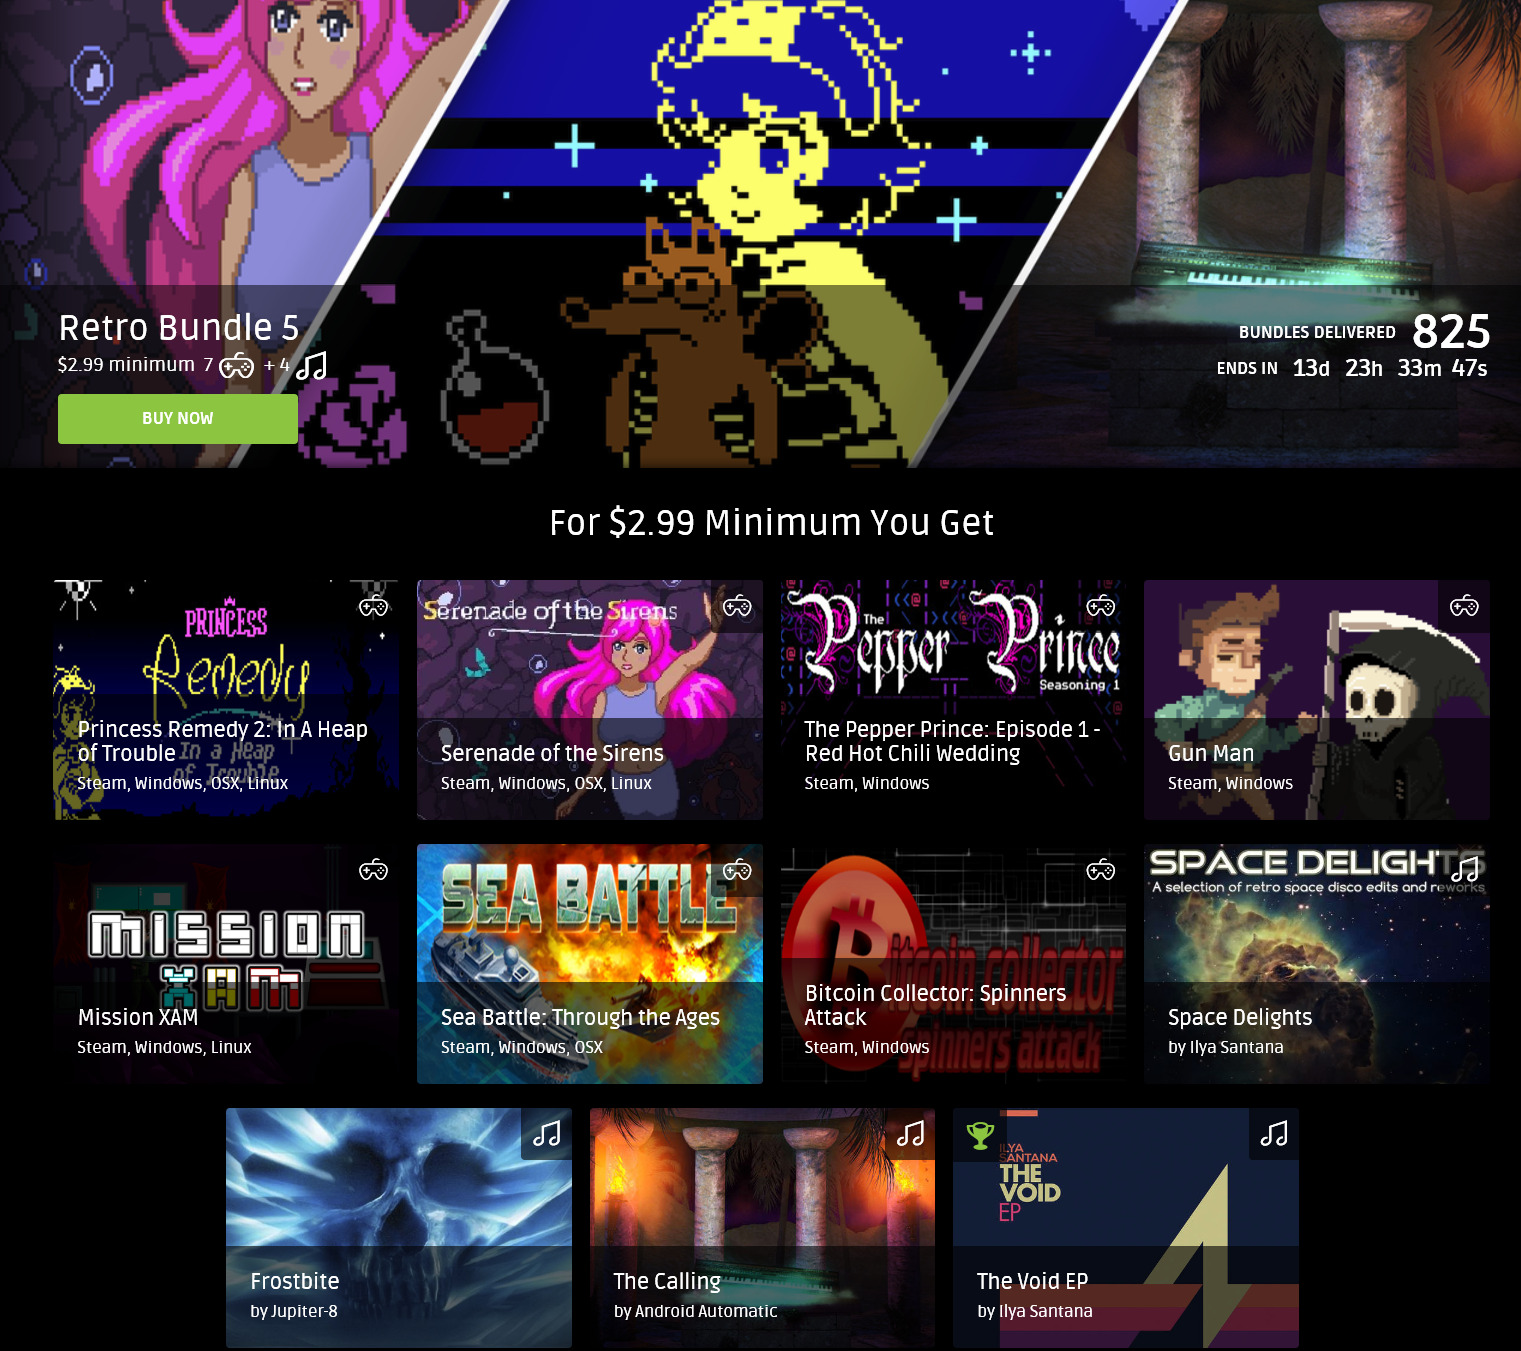 Screenshot_2019-05-31 Retro Bundle 5.jpg